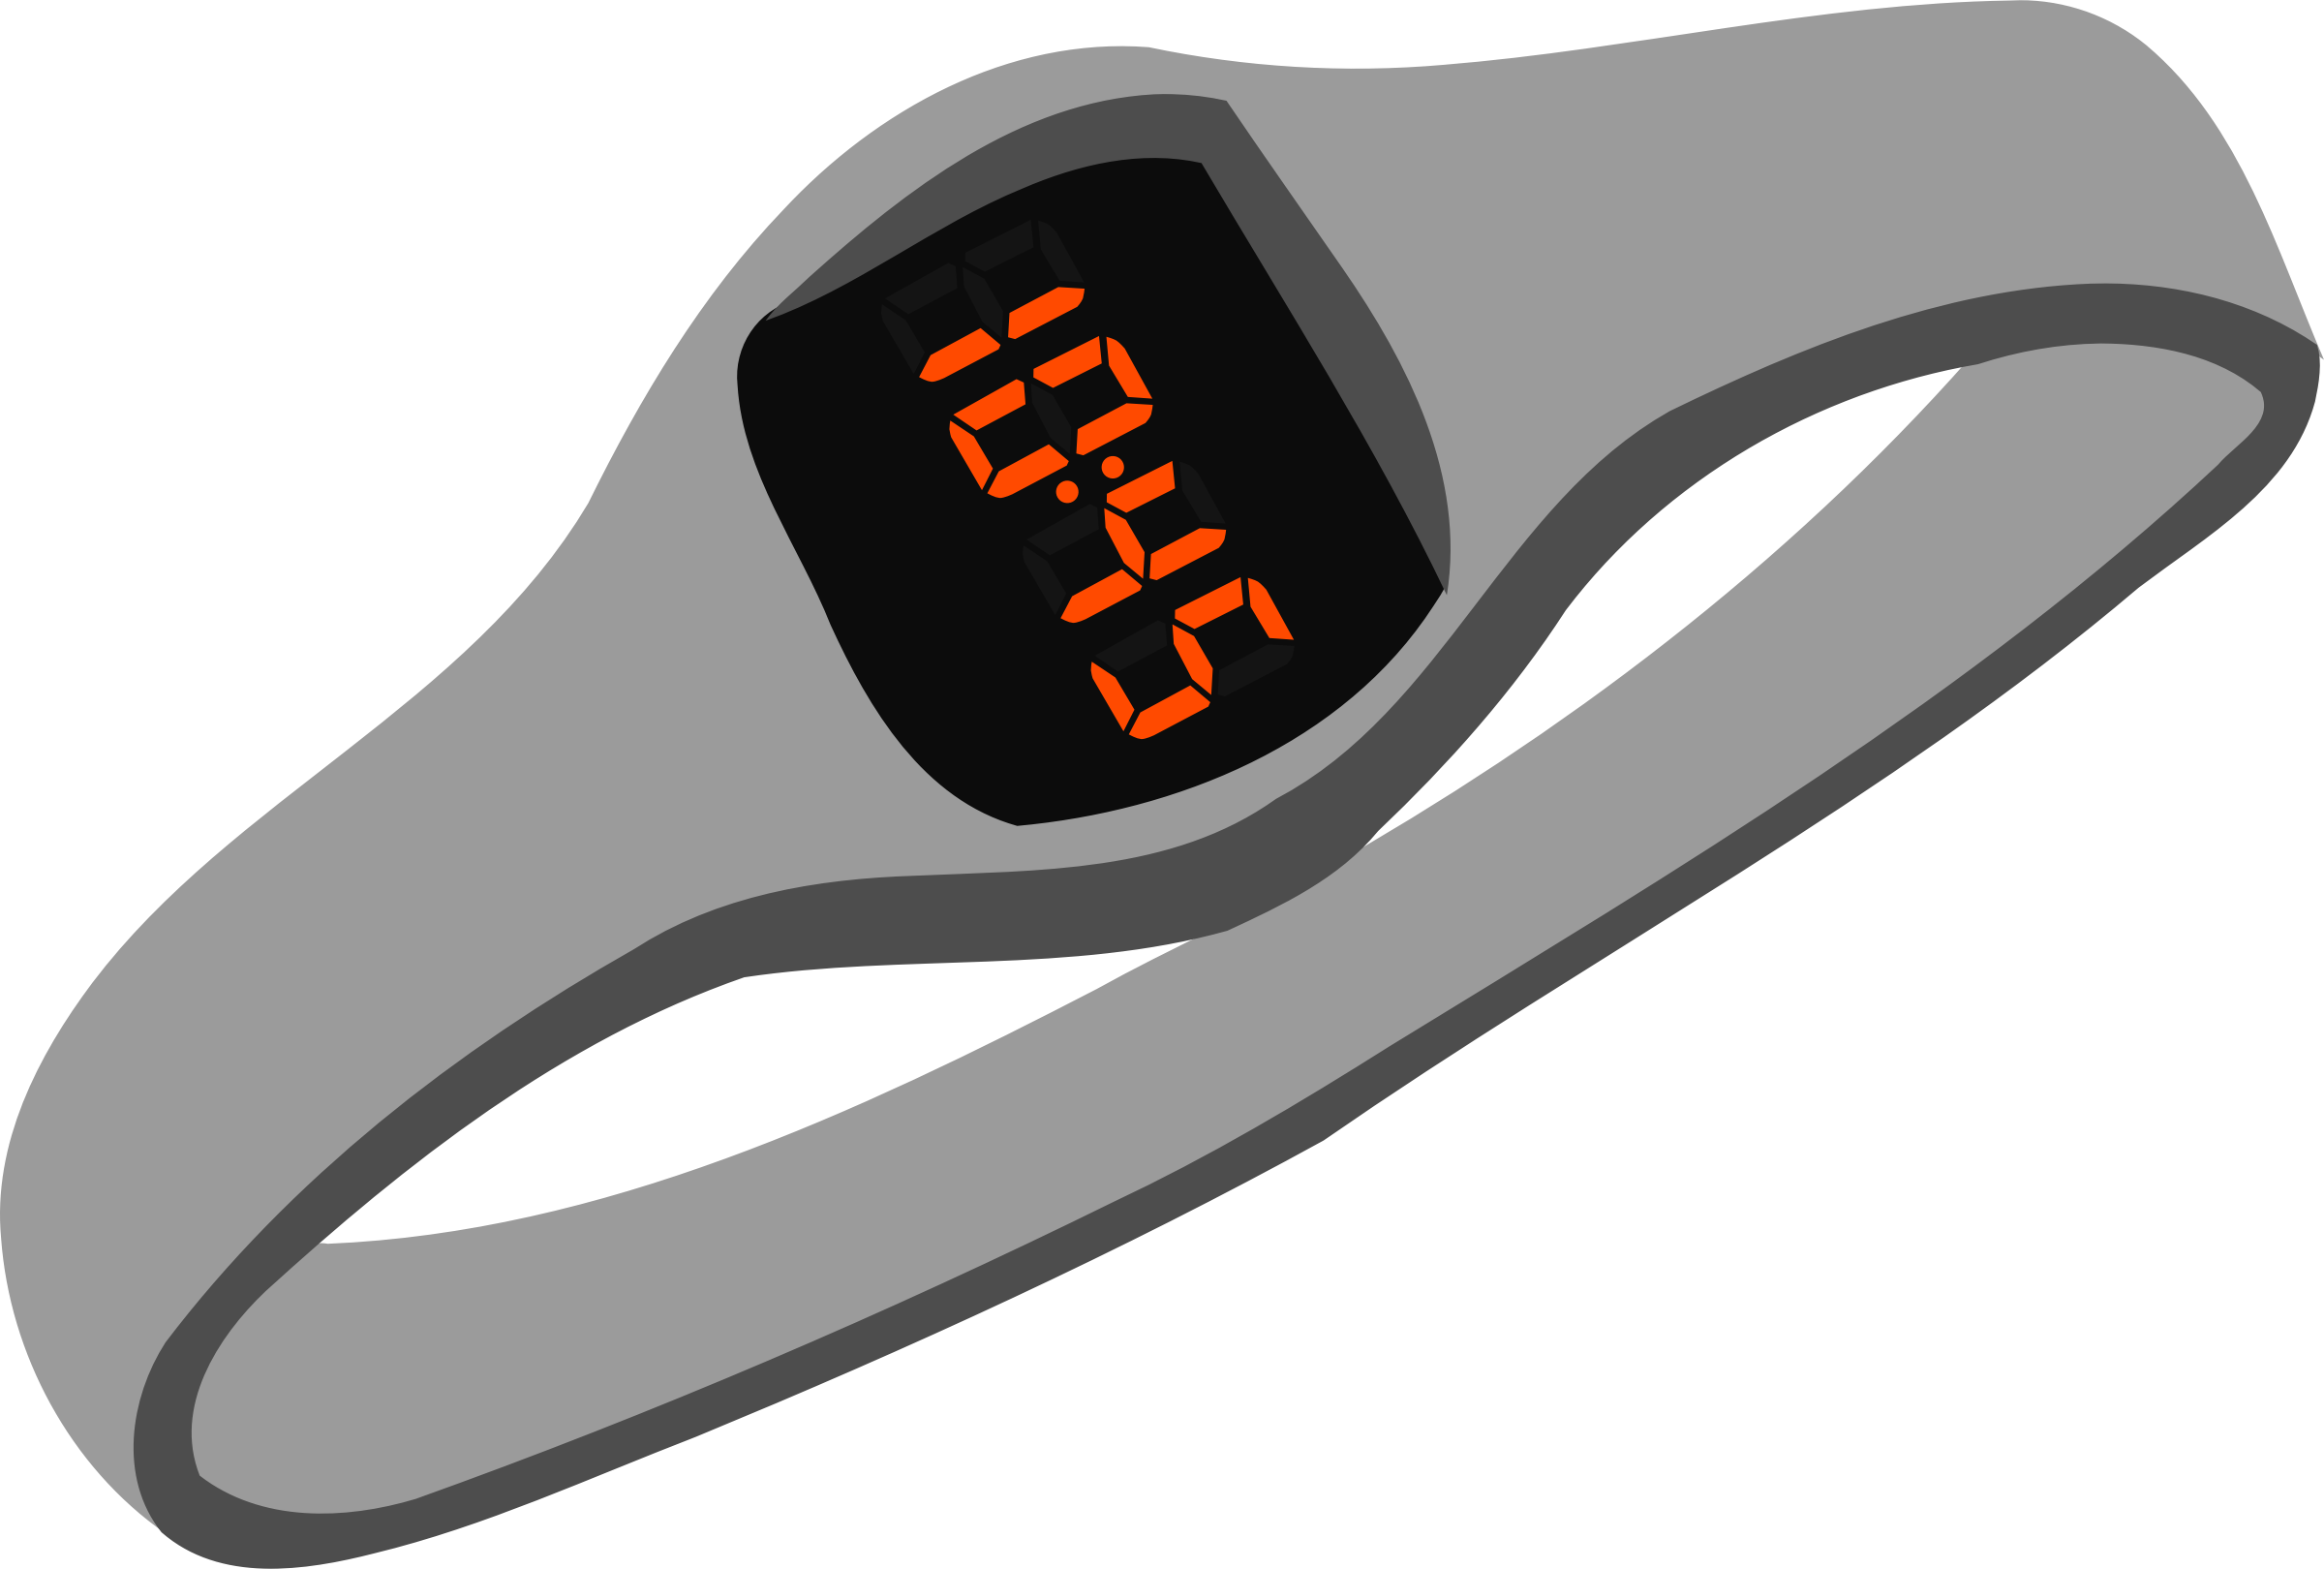 Digital Wristwatch Vector Clipart image.